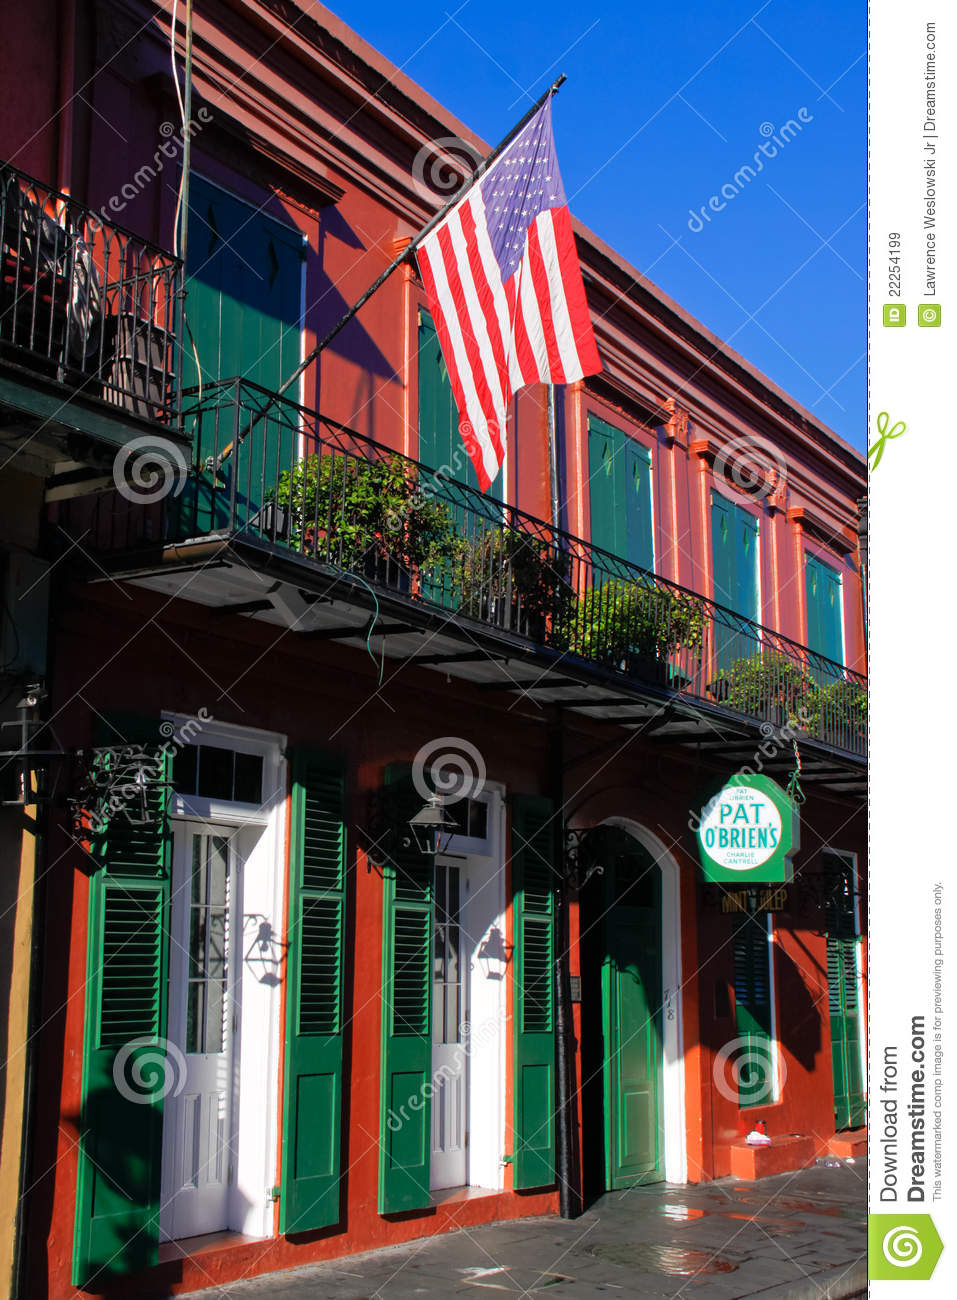 New Orleans French Quarter Pat Obriens Editorial Stock Image Image